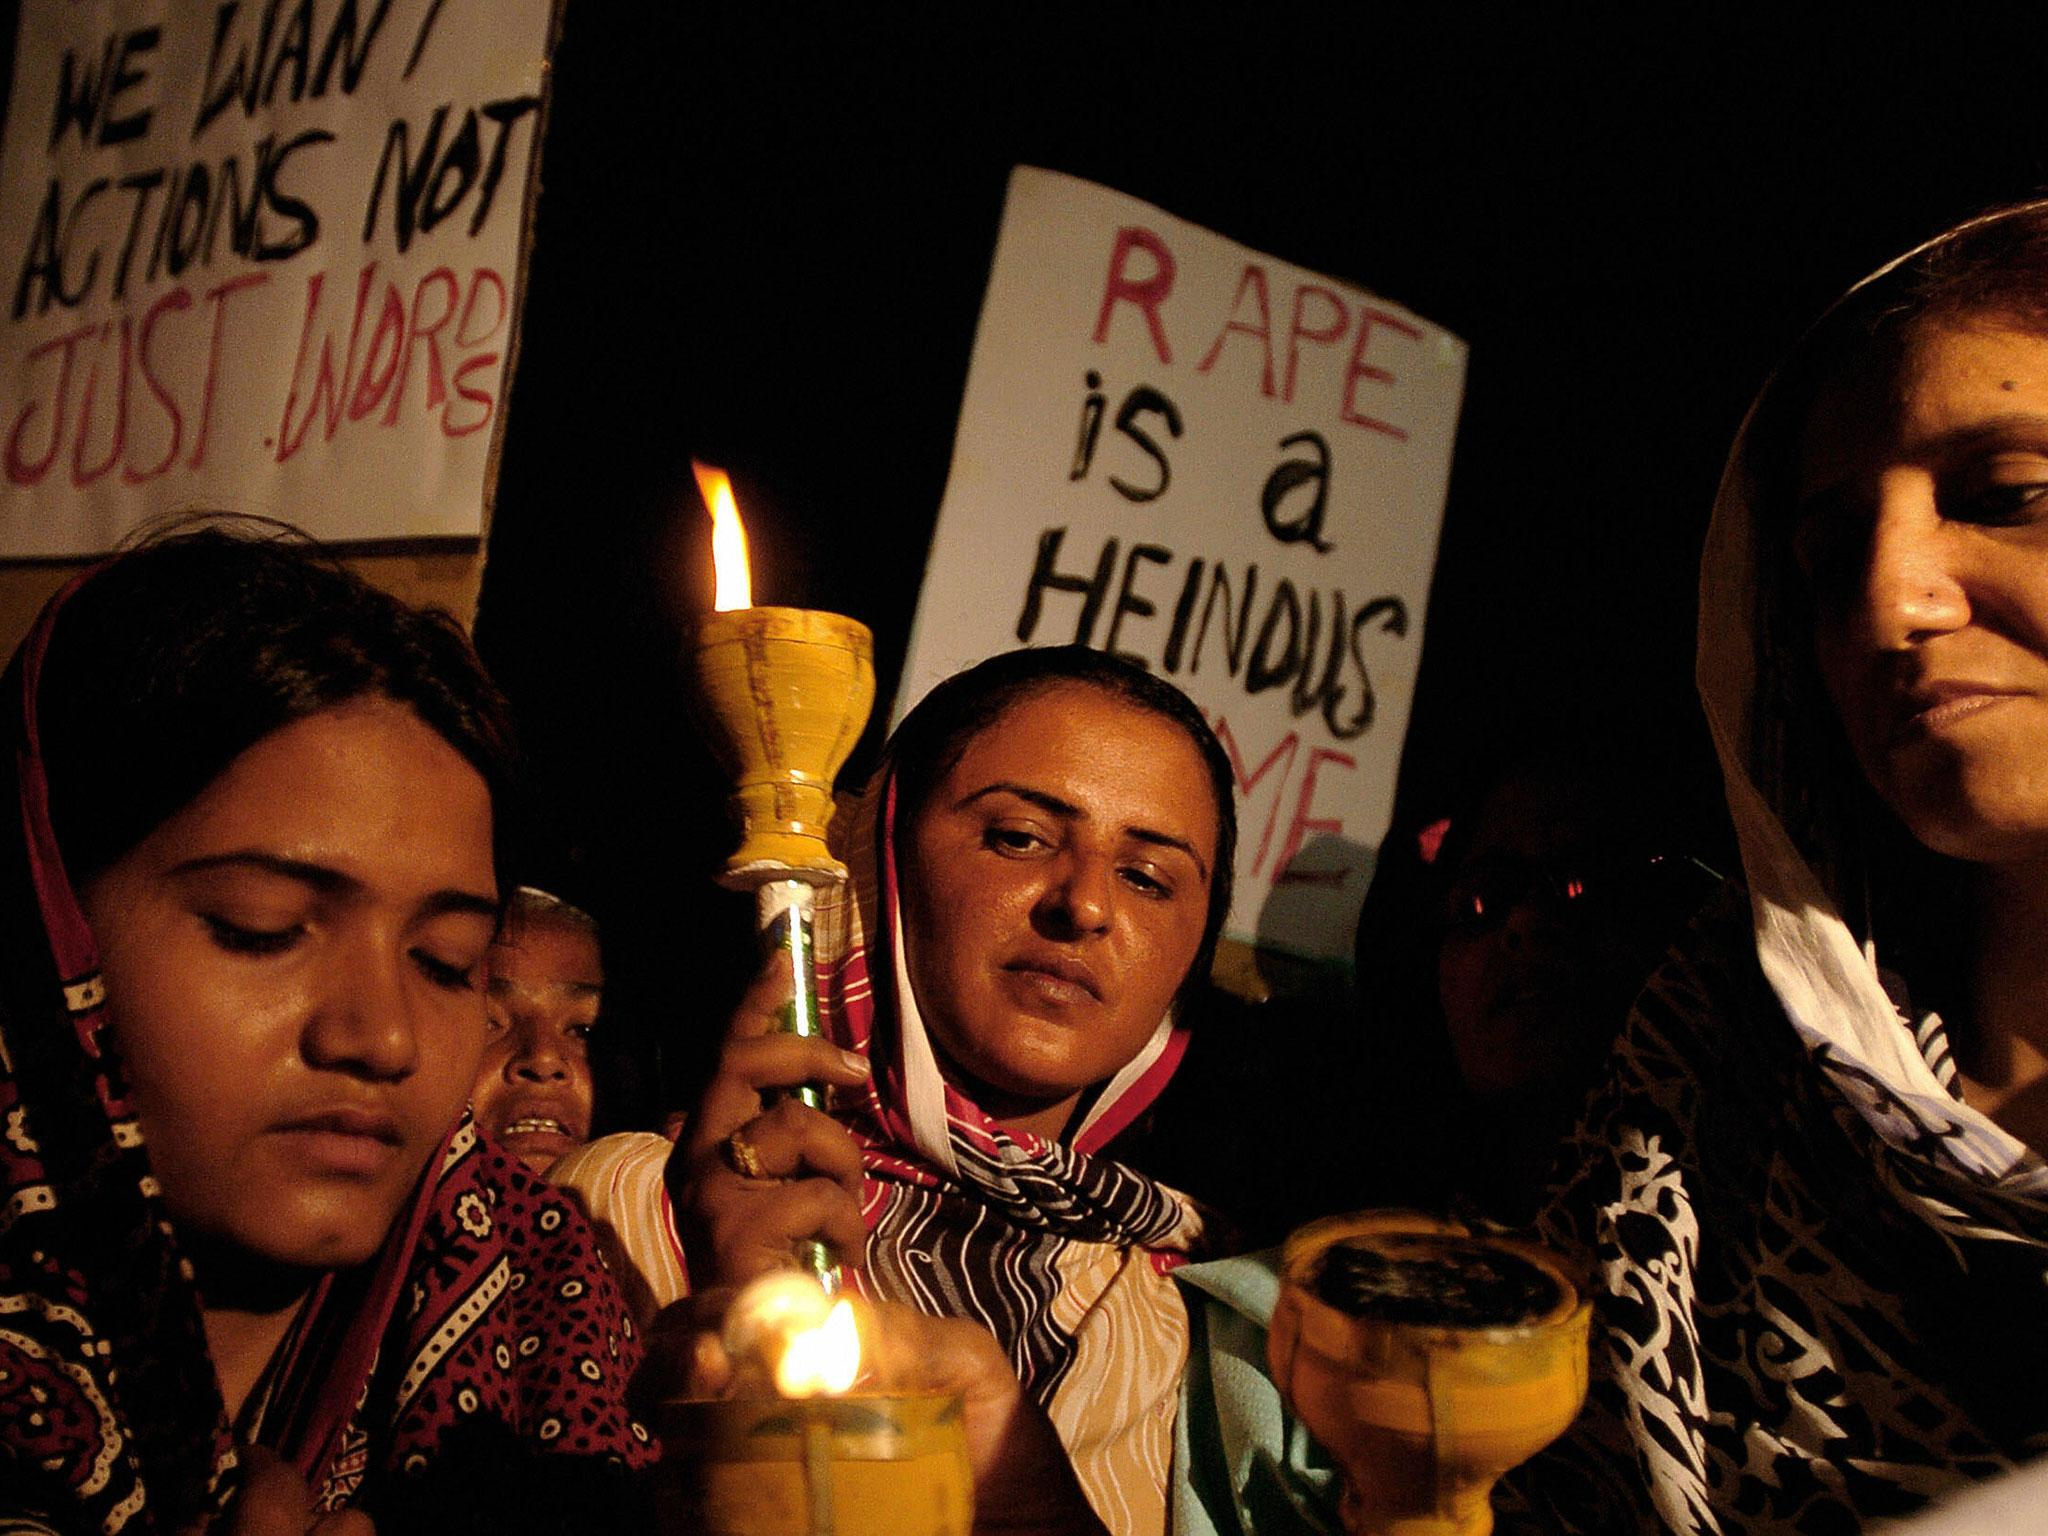 gang rape - latest news, breaking stories and comment - The Independent